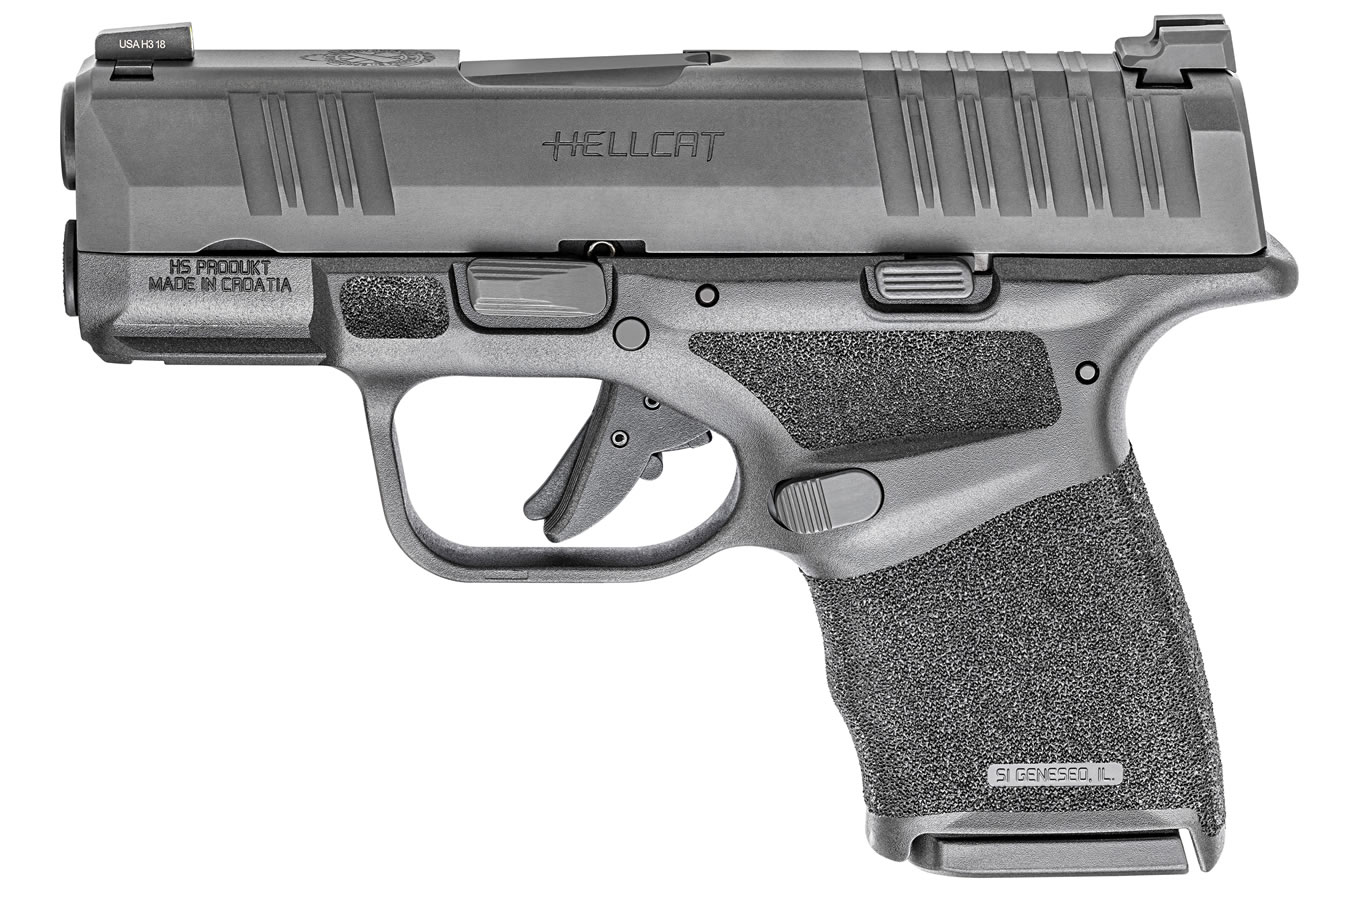 No. 3 Best Selling: SPRINGFIELD HELLCAT 9MM BLACK MICRO COMPACT PISTOL